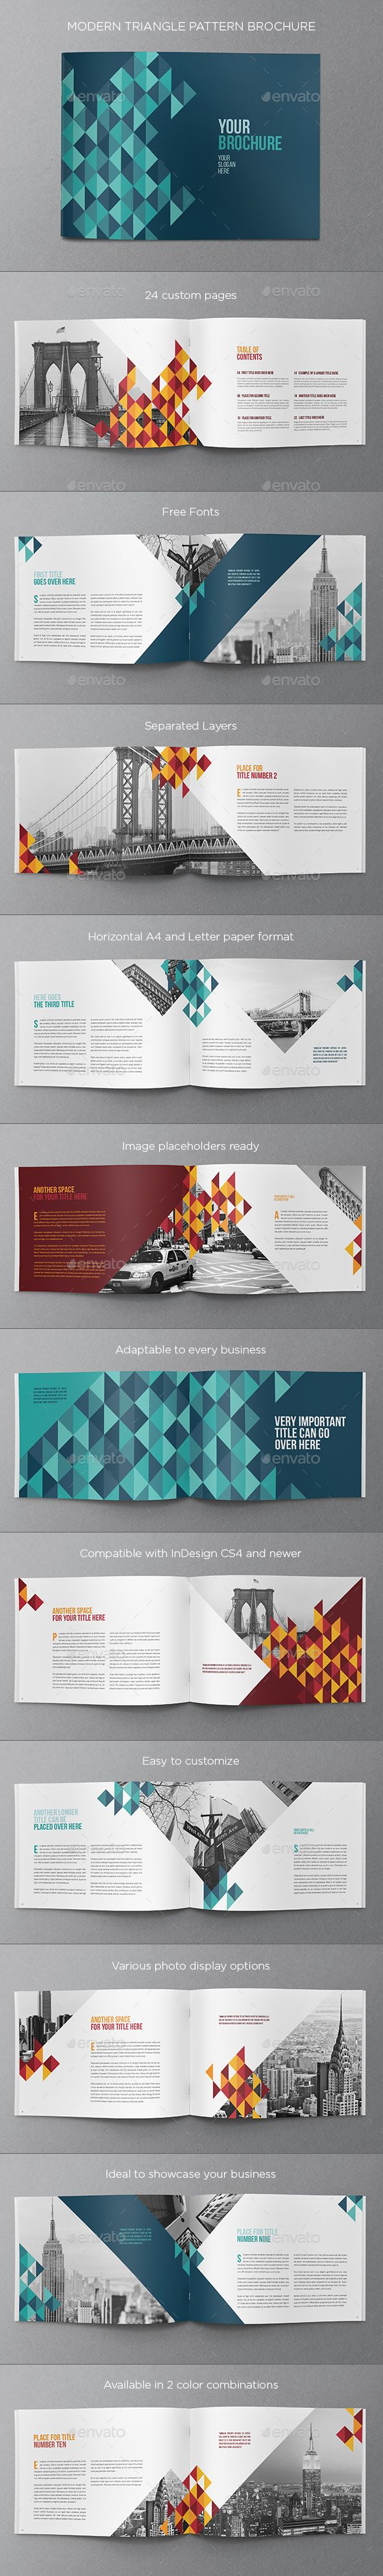 Colorful Triangle Pattern Brochure - Brochures Print Templates - modern, easy to customise brochure design.